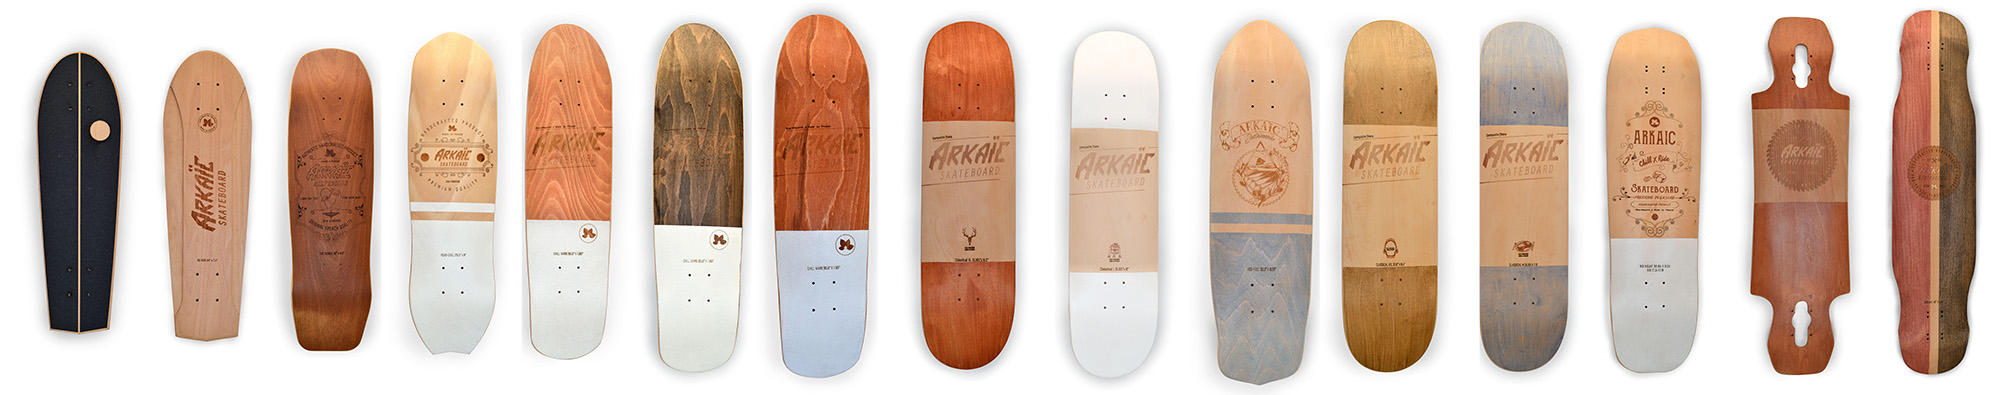 arkaic concept gamme skateboards